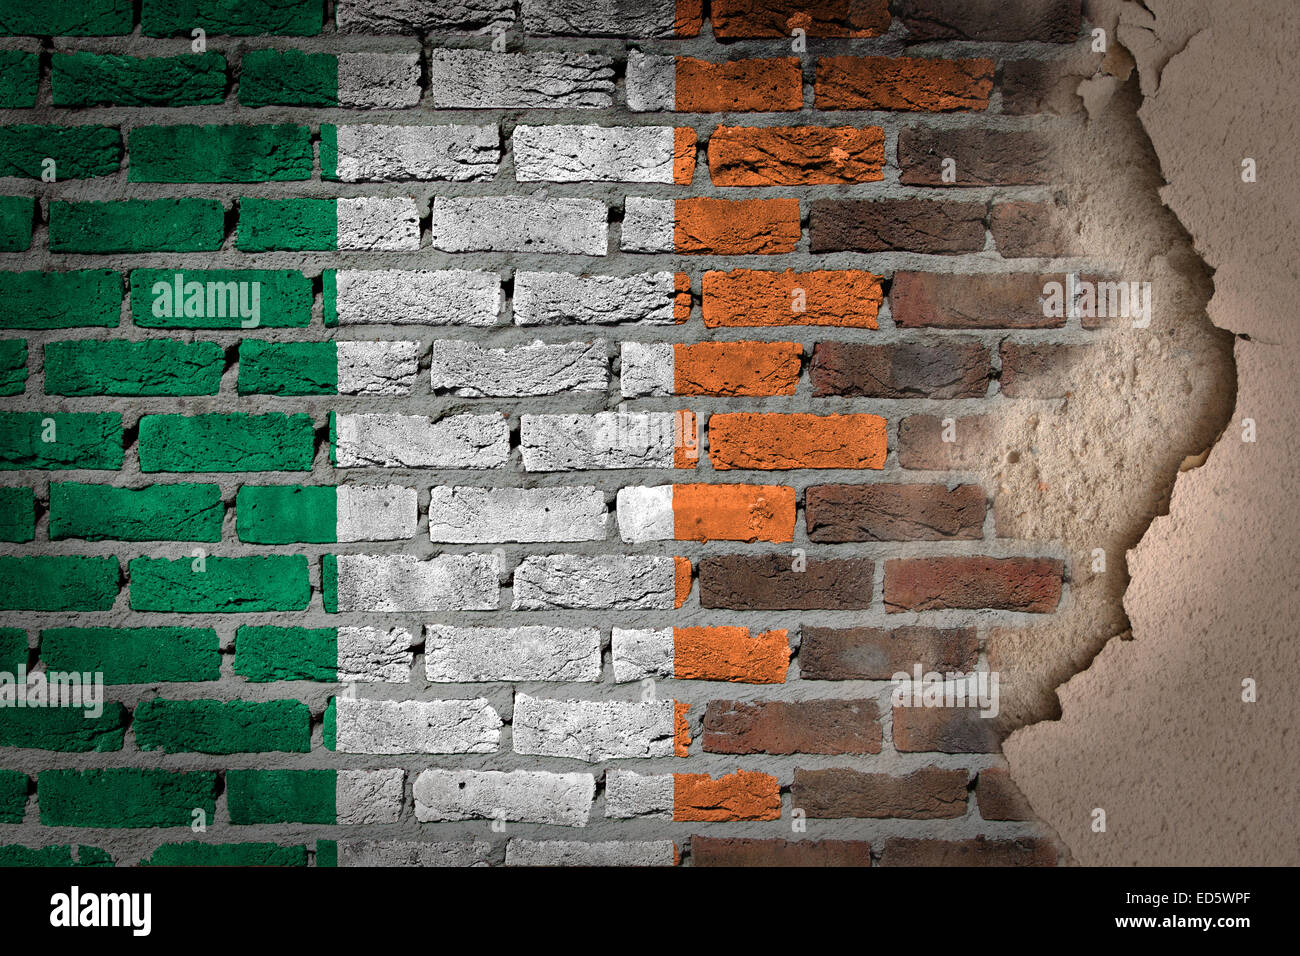 Dark Brick Wall Texture With Plaster Flag Painted On Wall Ireland Stock P